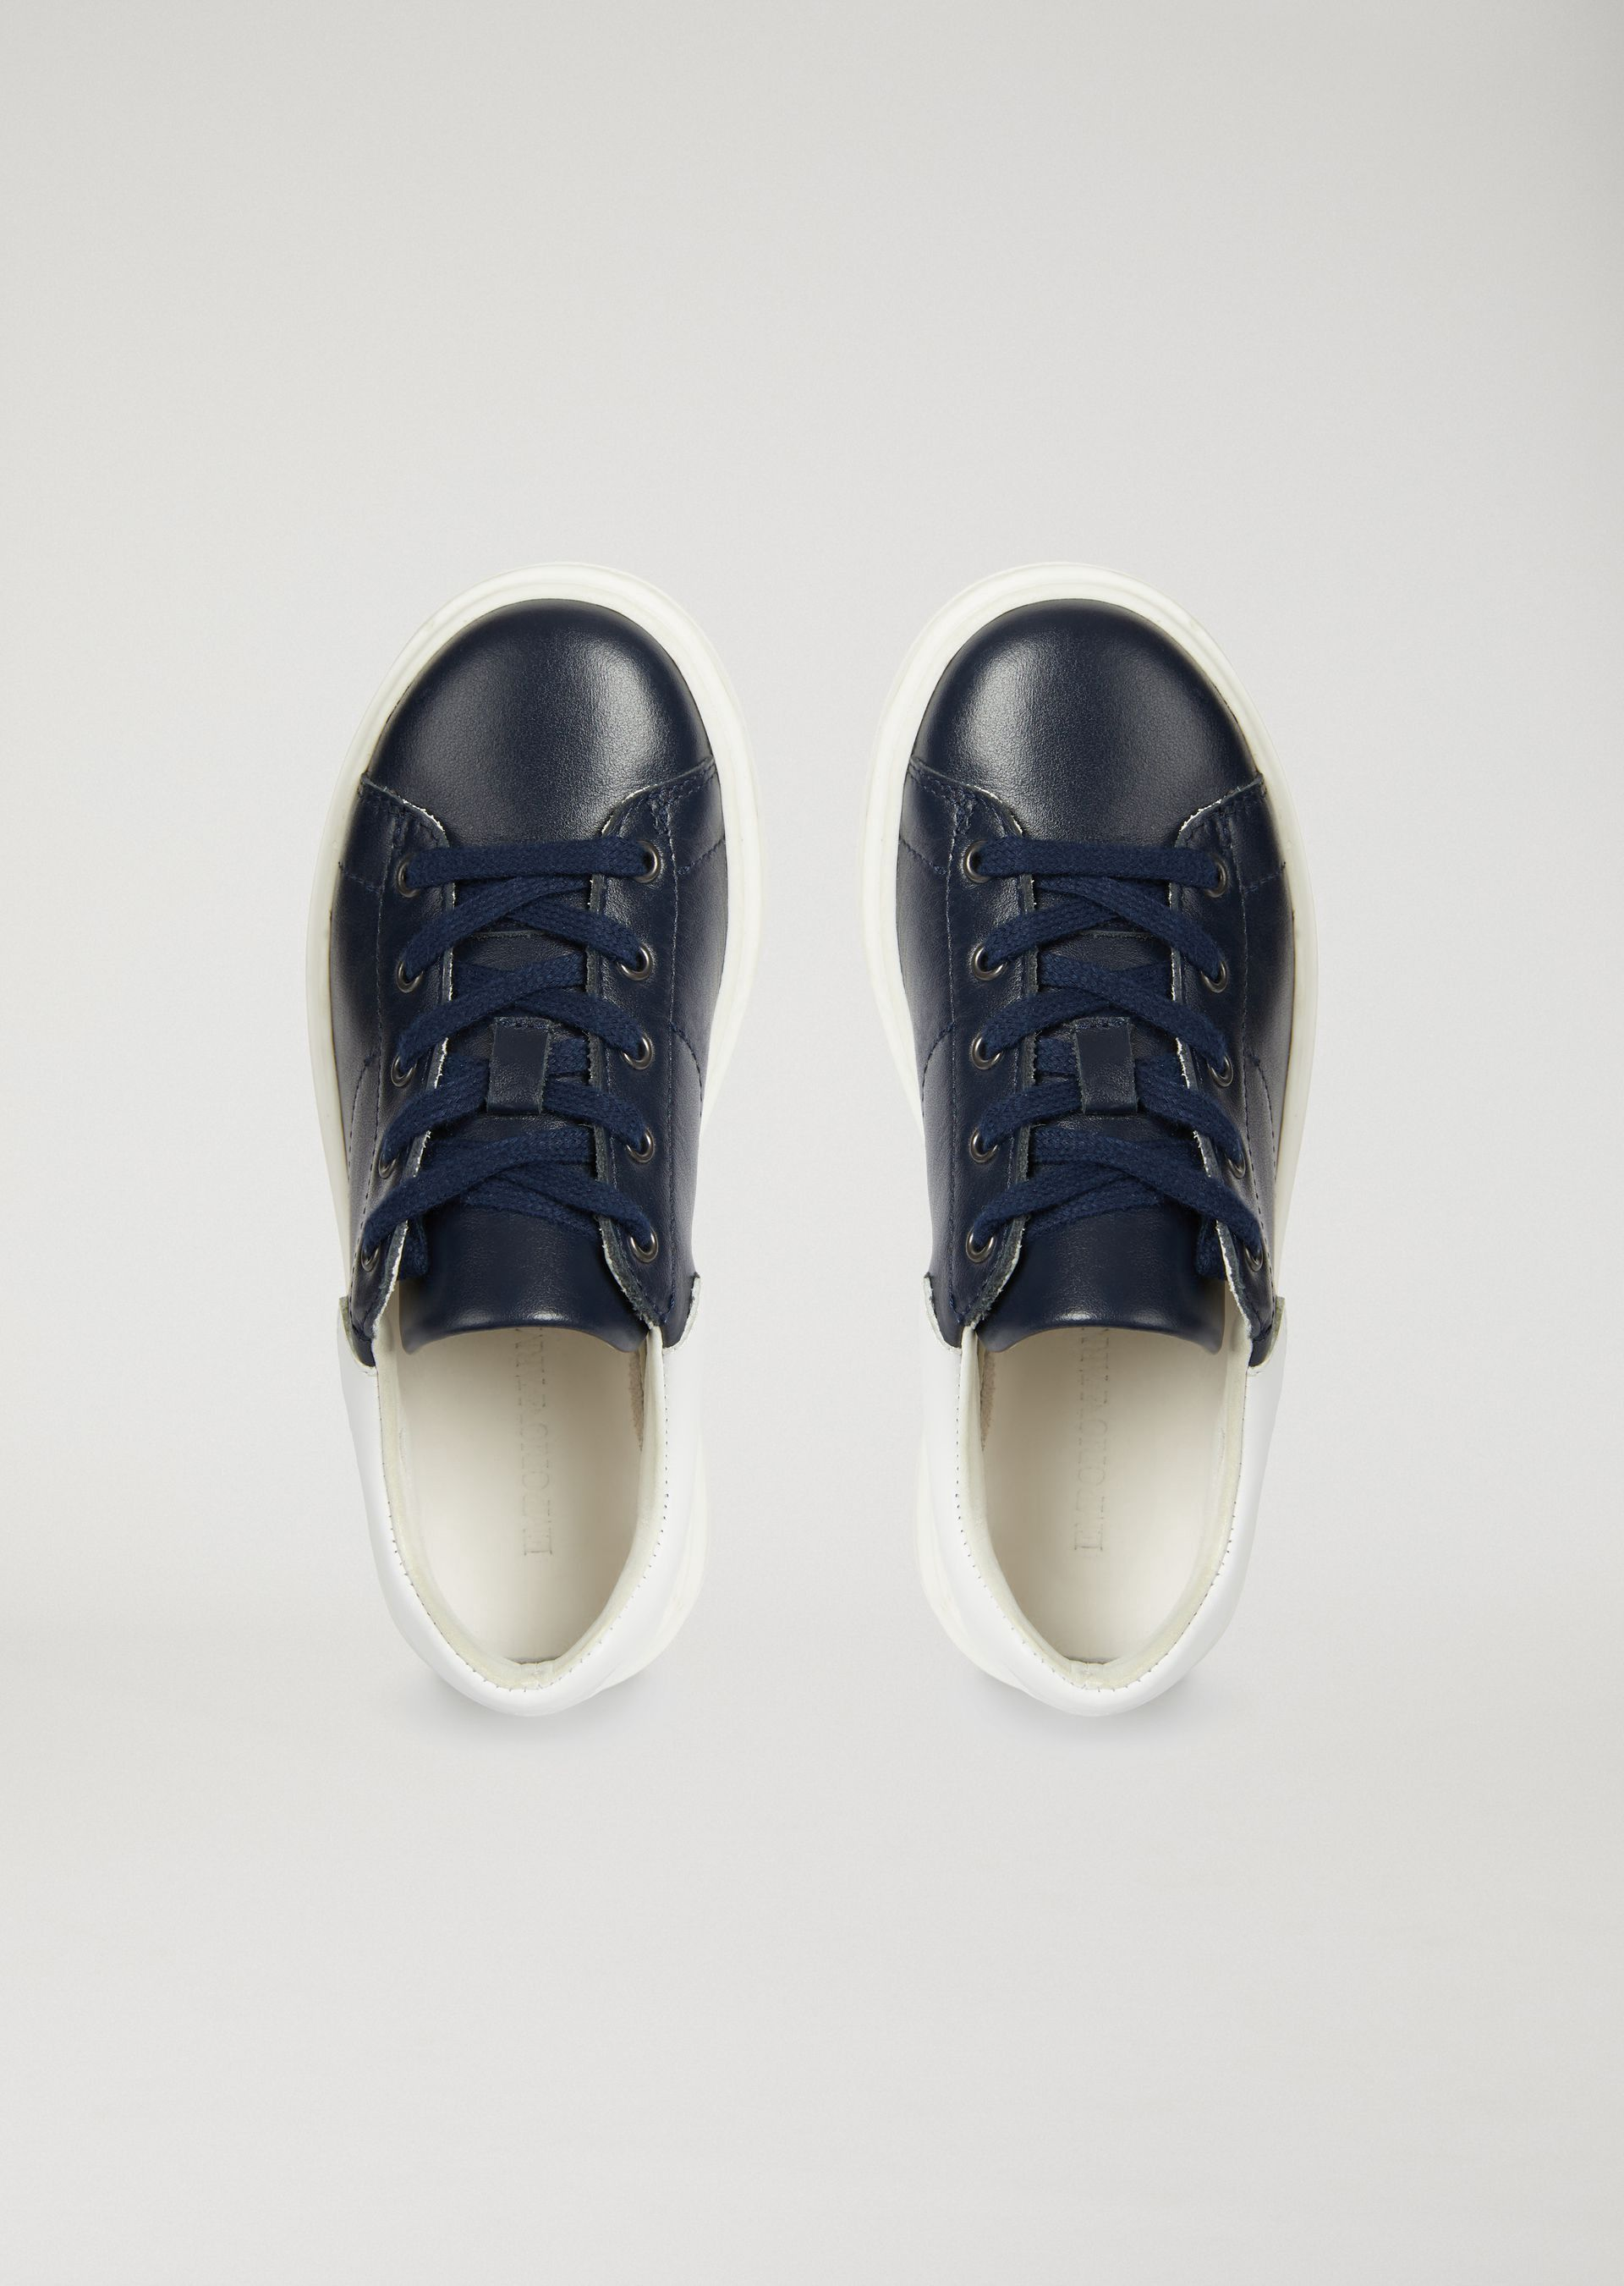 ef165ff32 Emporio Armani Nappa Sneakers With Logo - Navy Blue 32 | Products ...